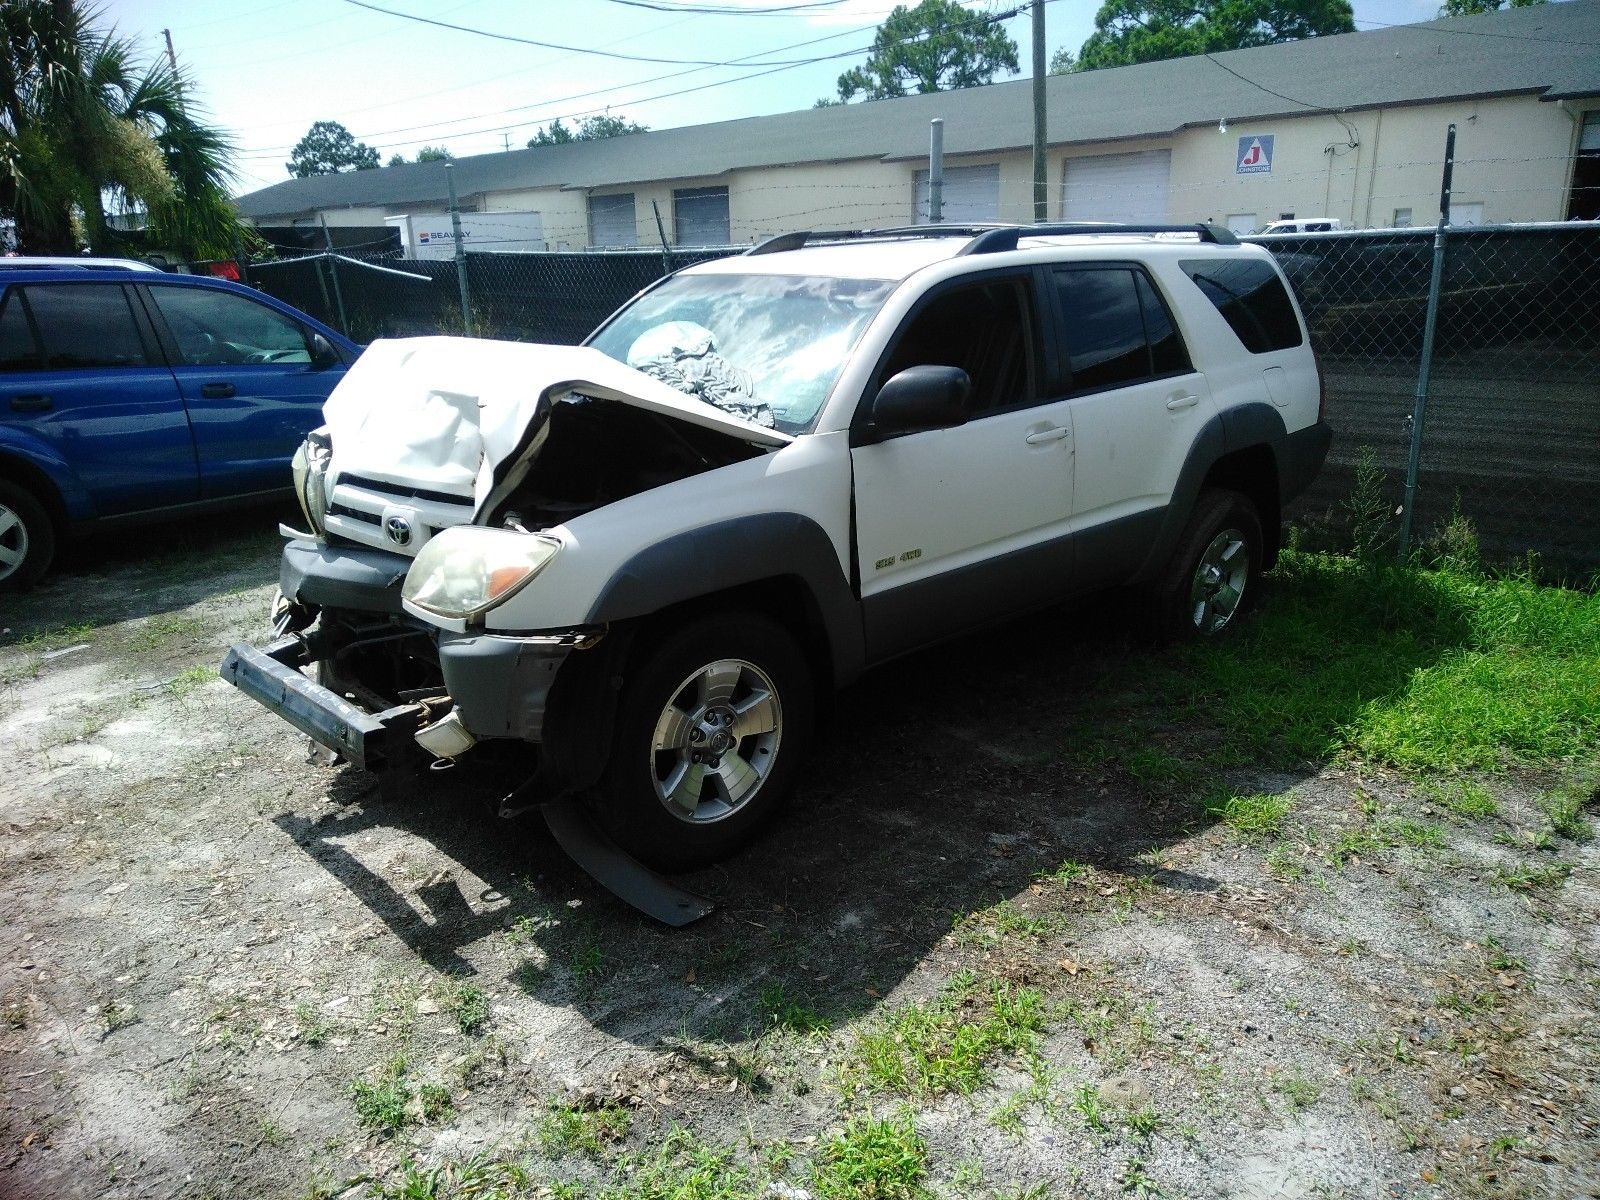 2017 Toyota 4runner >> Damaged 2003 Toyota 4Runner offroad frame is OK for sale